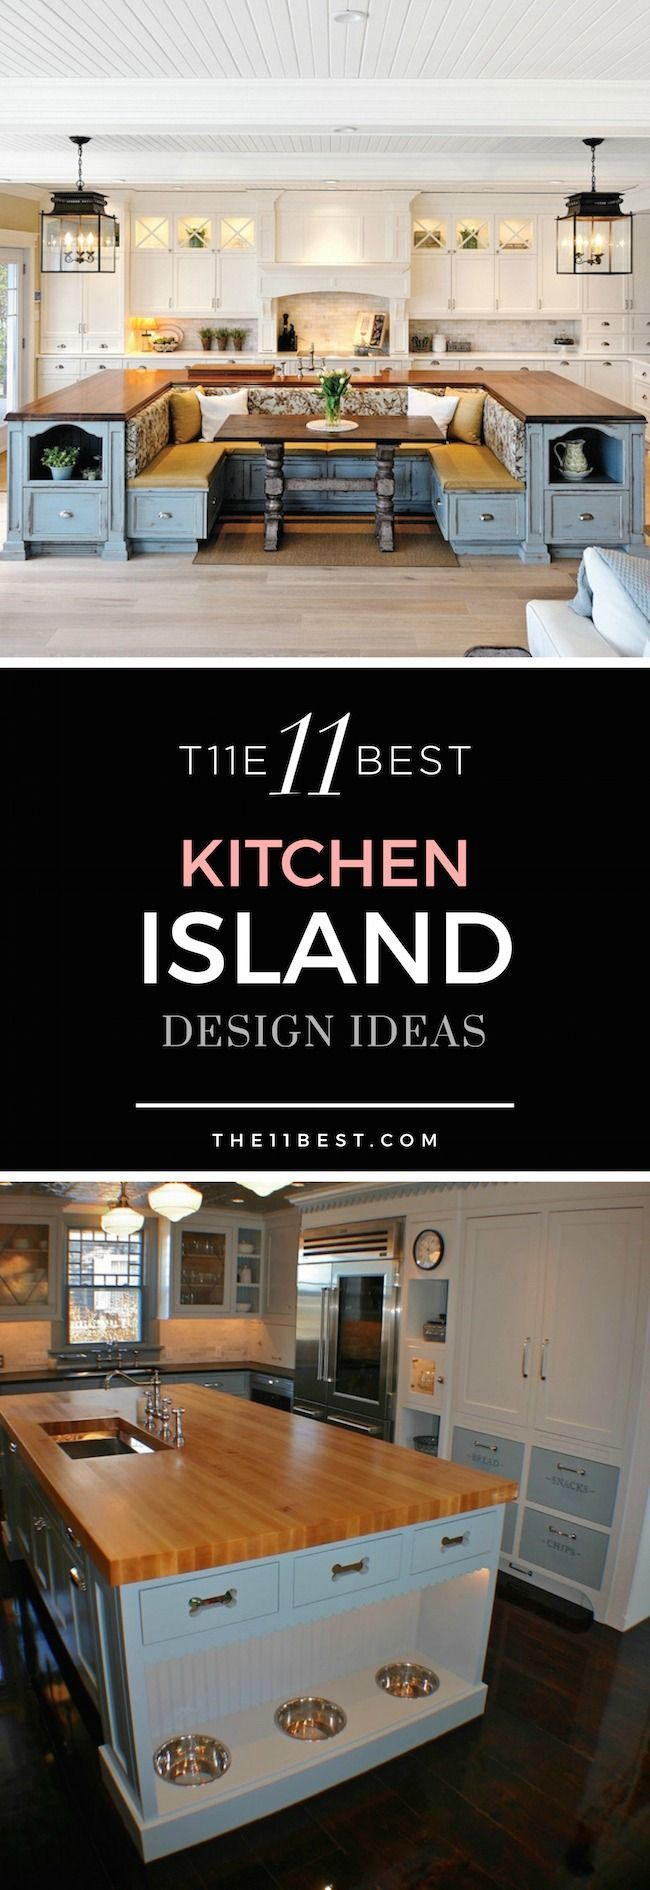 Modern kitchens kitchen ideas kitchen islands dream kitchens - The 11 Best Kitchen Island Design Ideas For Your Home